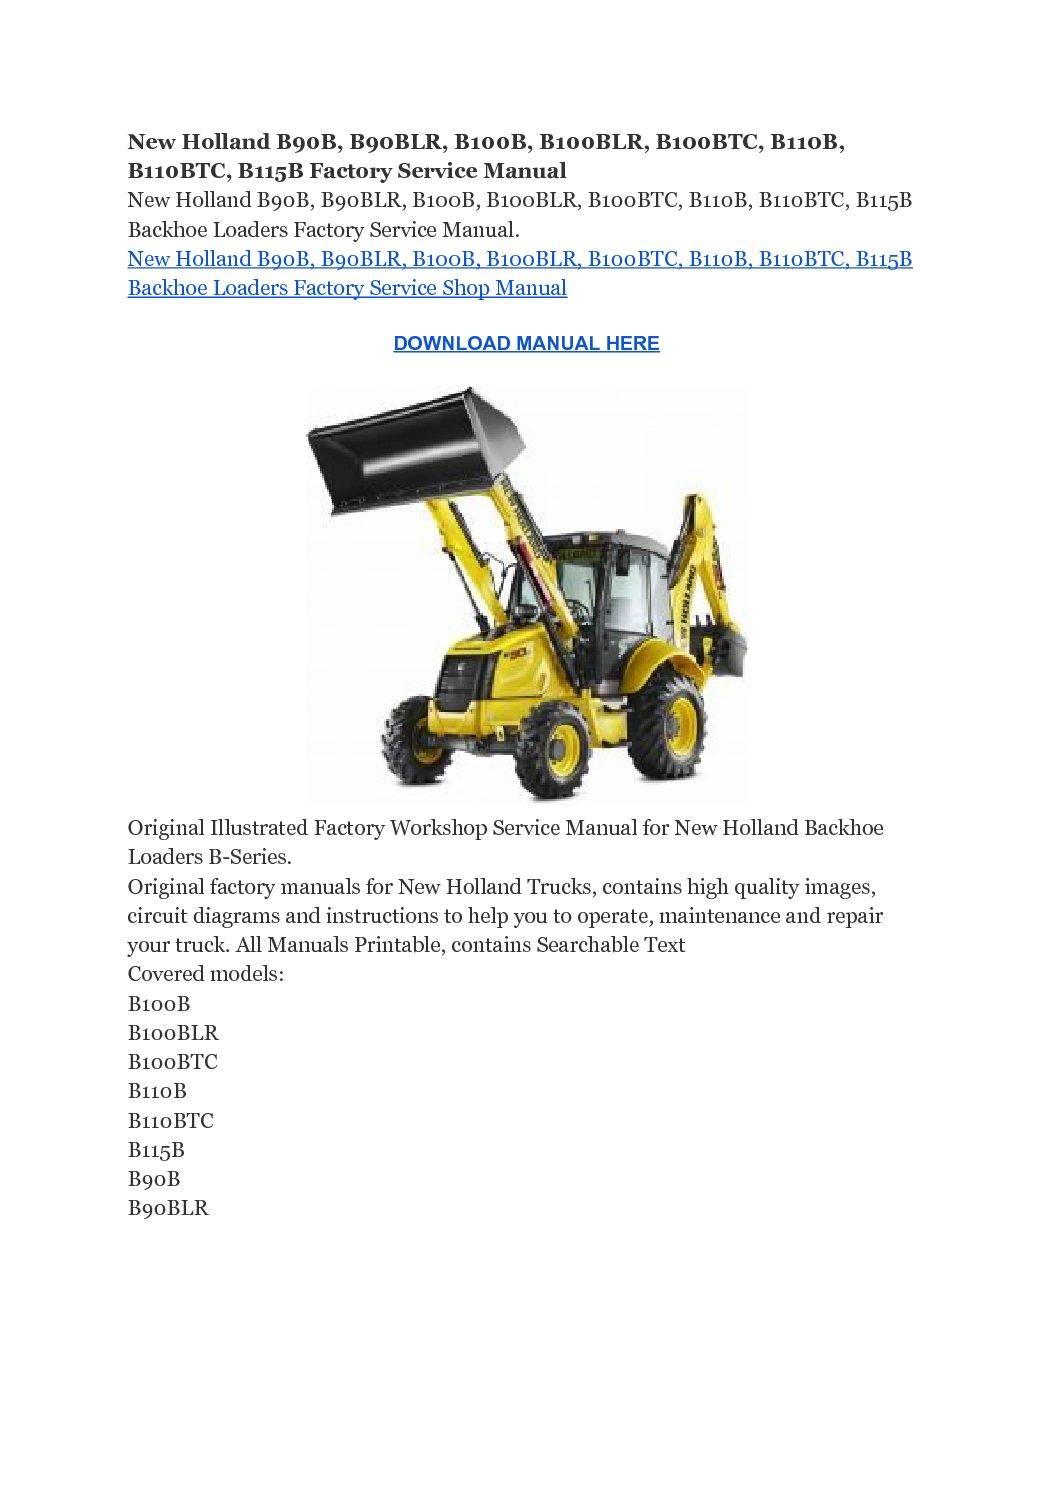 New Holland B90B, B90BLR, B100B, B100BLR, B100BTC, B110B, B110BTC, B115B Factory Service Manual